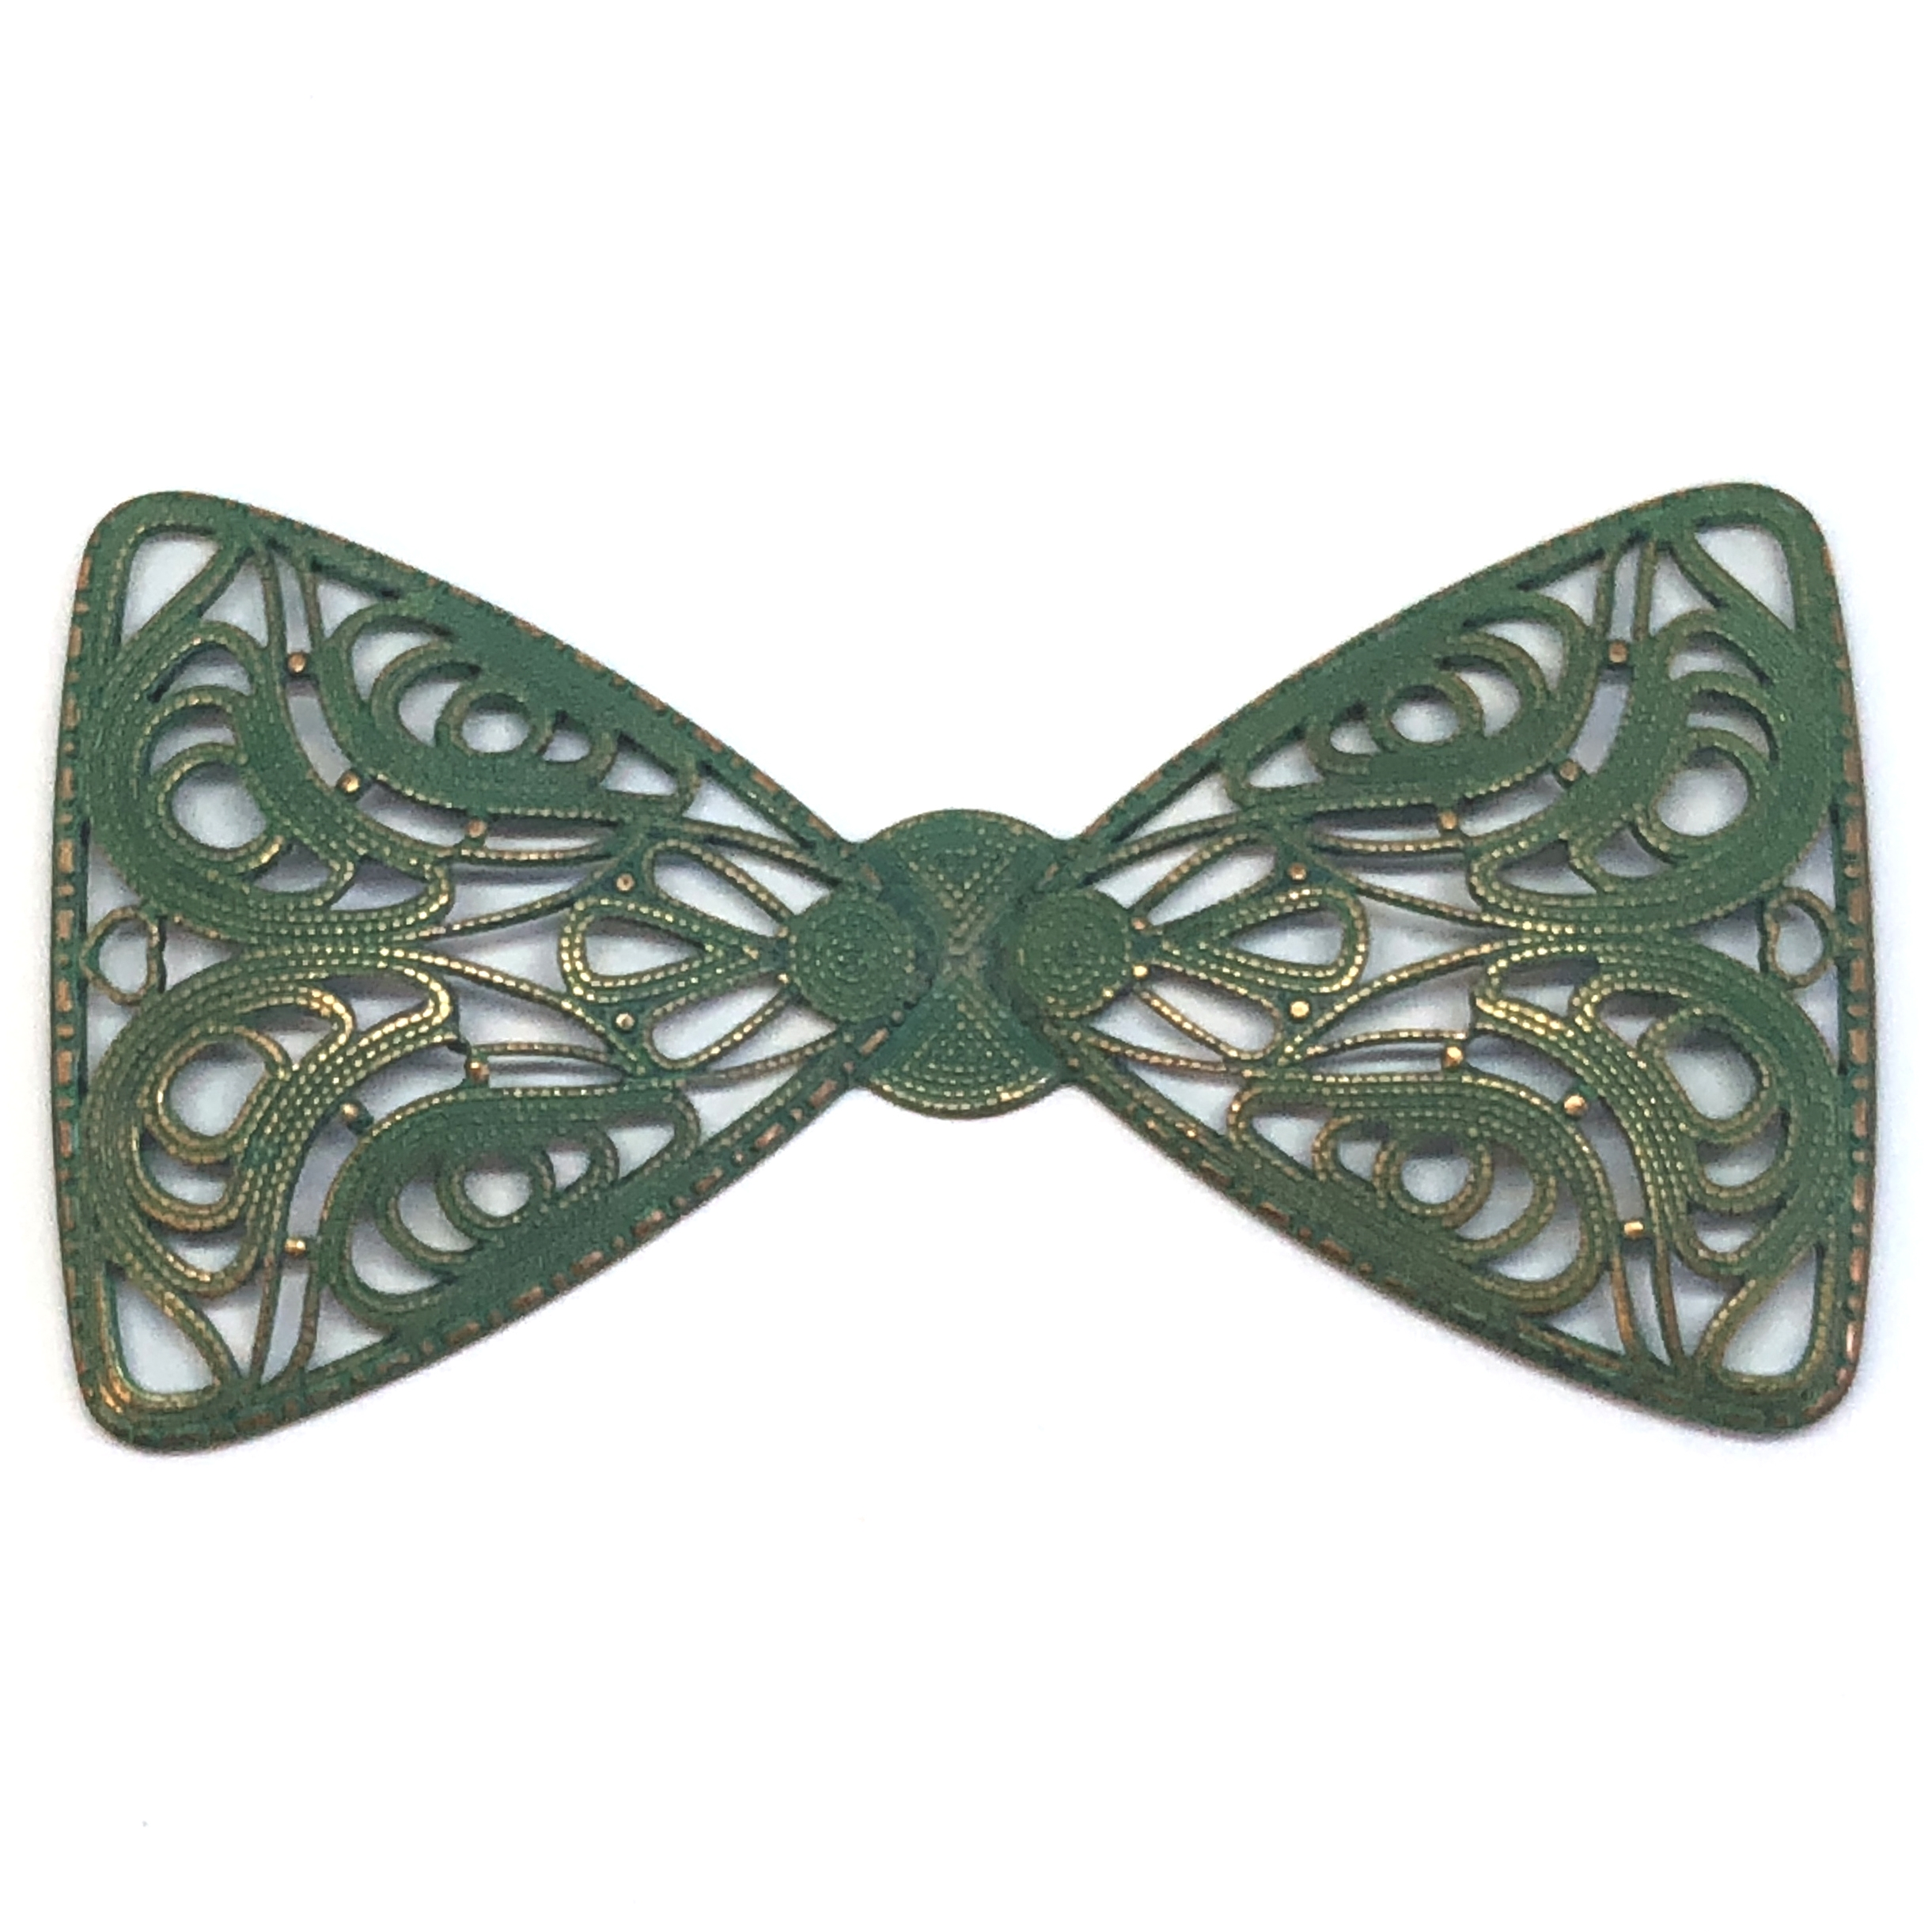 Bow Tie, Brass Filigree, aqua copper patina, filigree bow, 40 x 76mm, Brass Stamping, Us Made, Nickel Free, Jewelry Findings, B'sue Boutiques, bow, jewelry making, antique copper, 08200